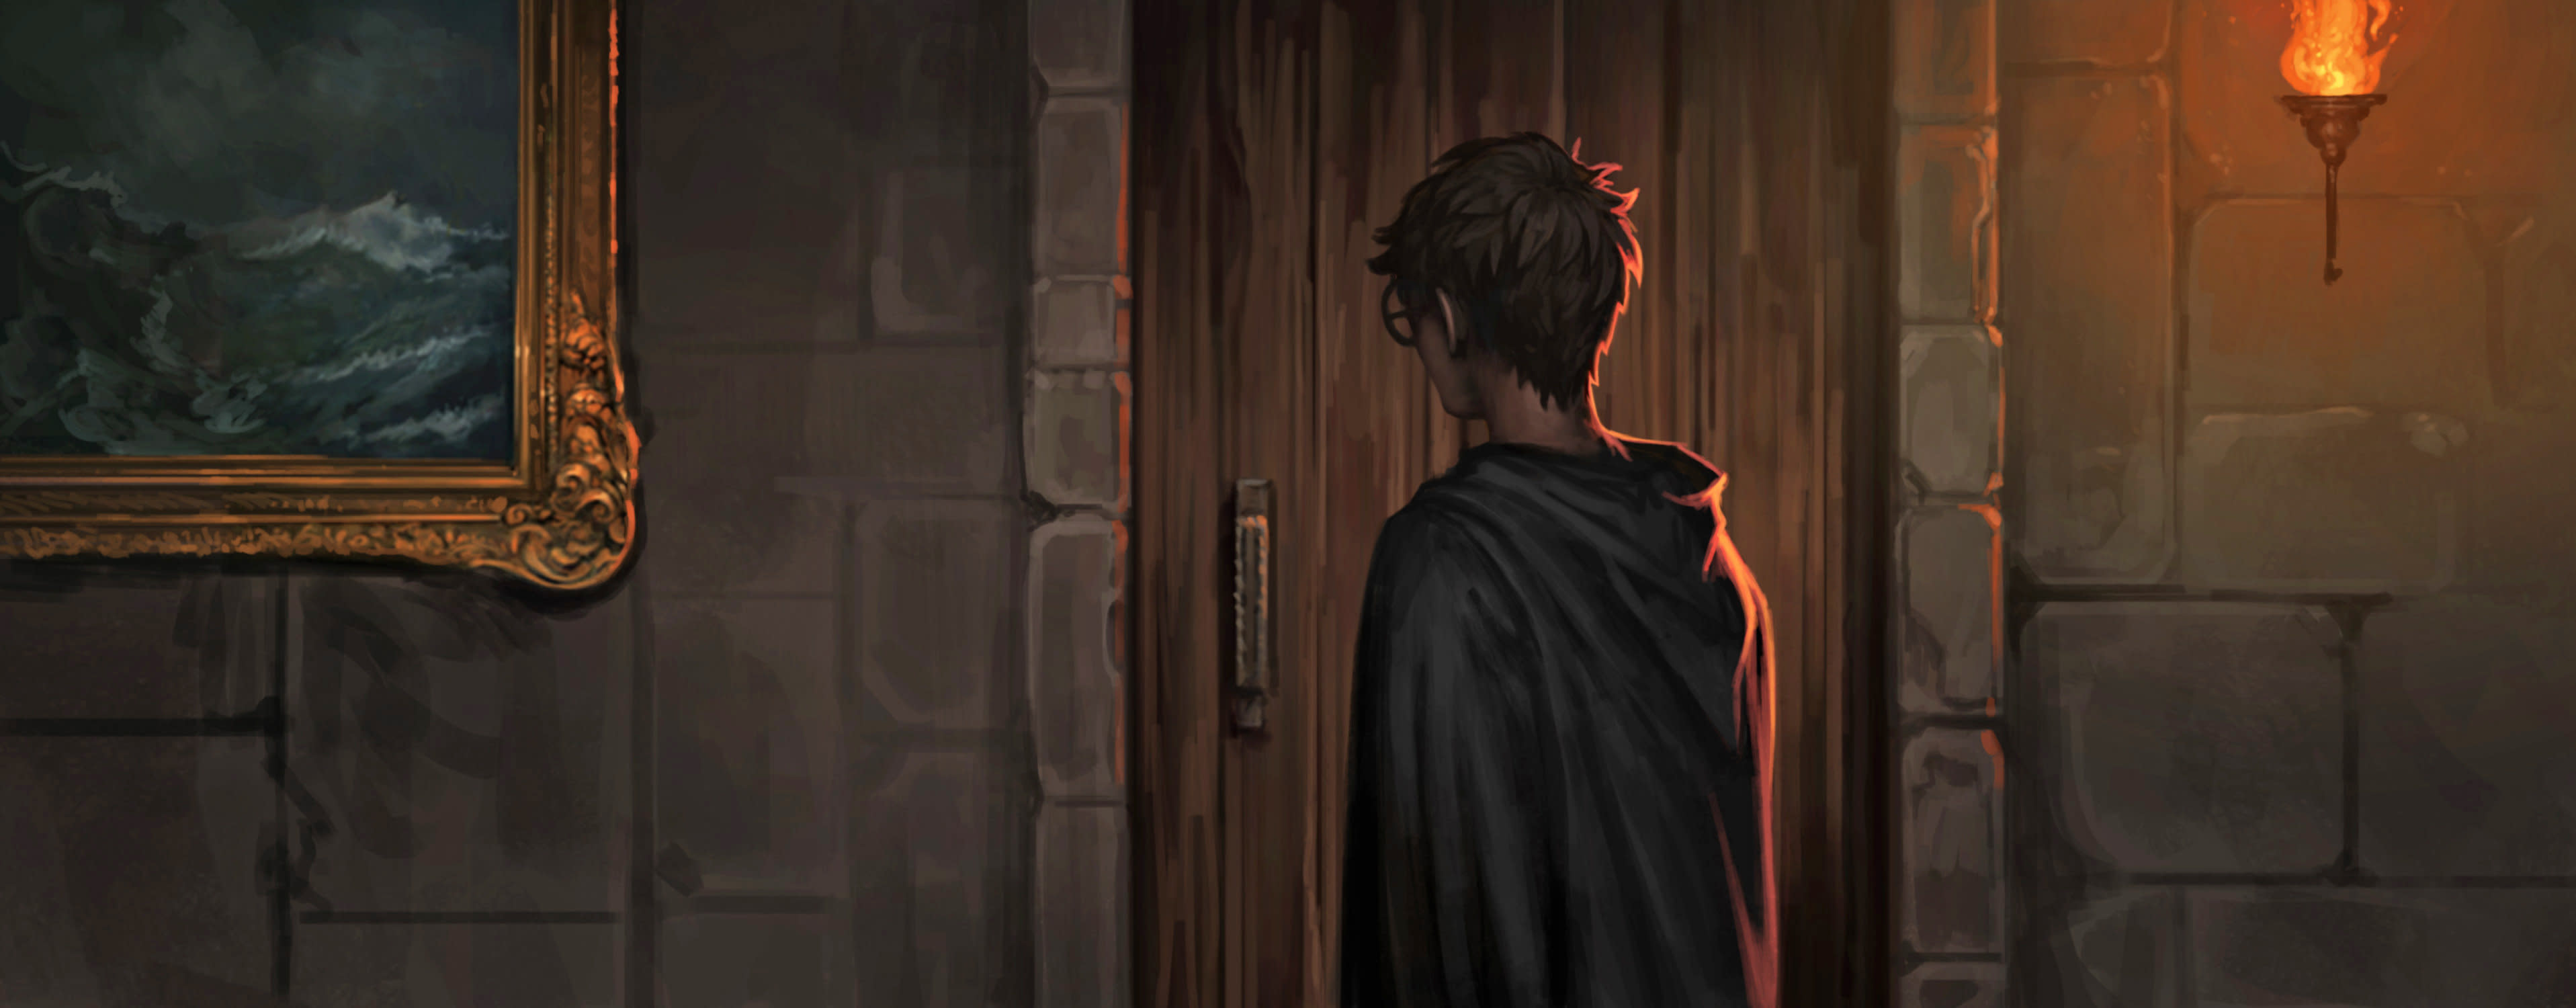 HarryPotter PM B5C13M1 HarryOutsideUmbridgesOffice Moment